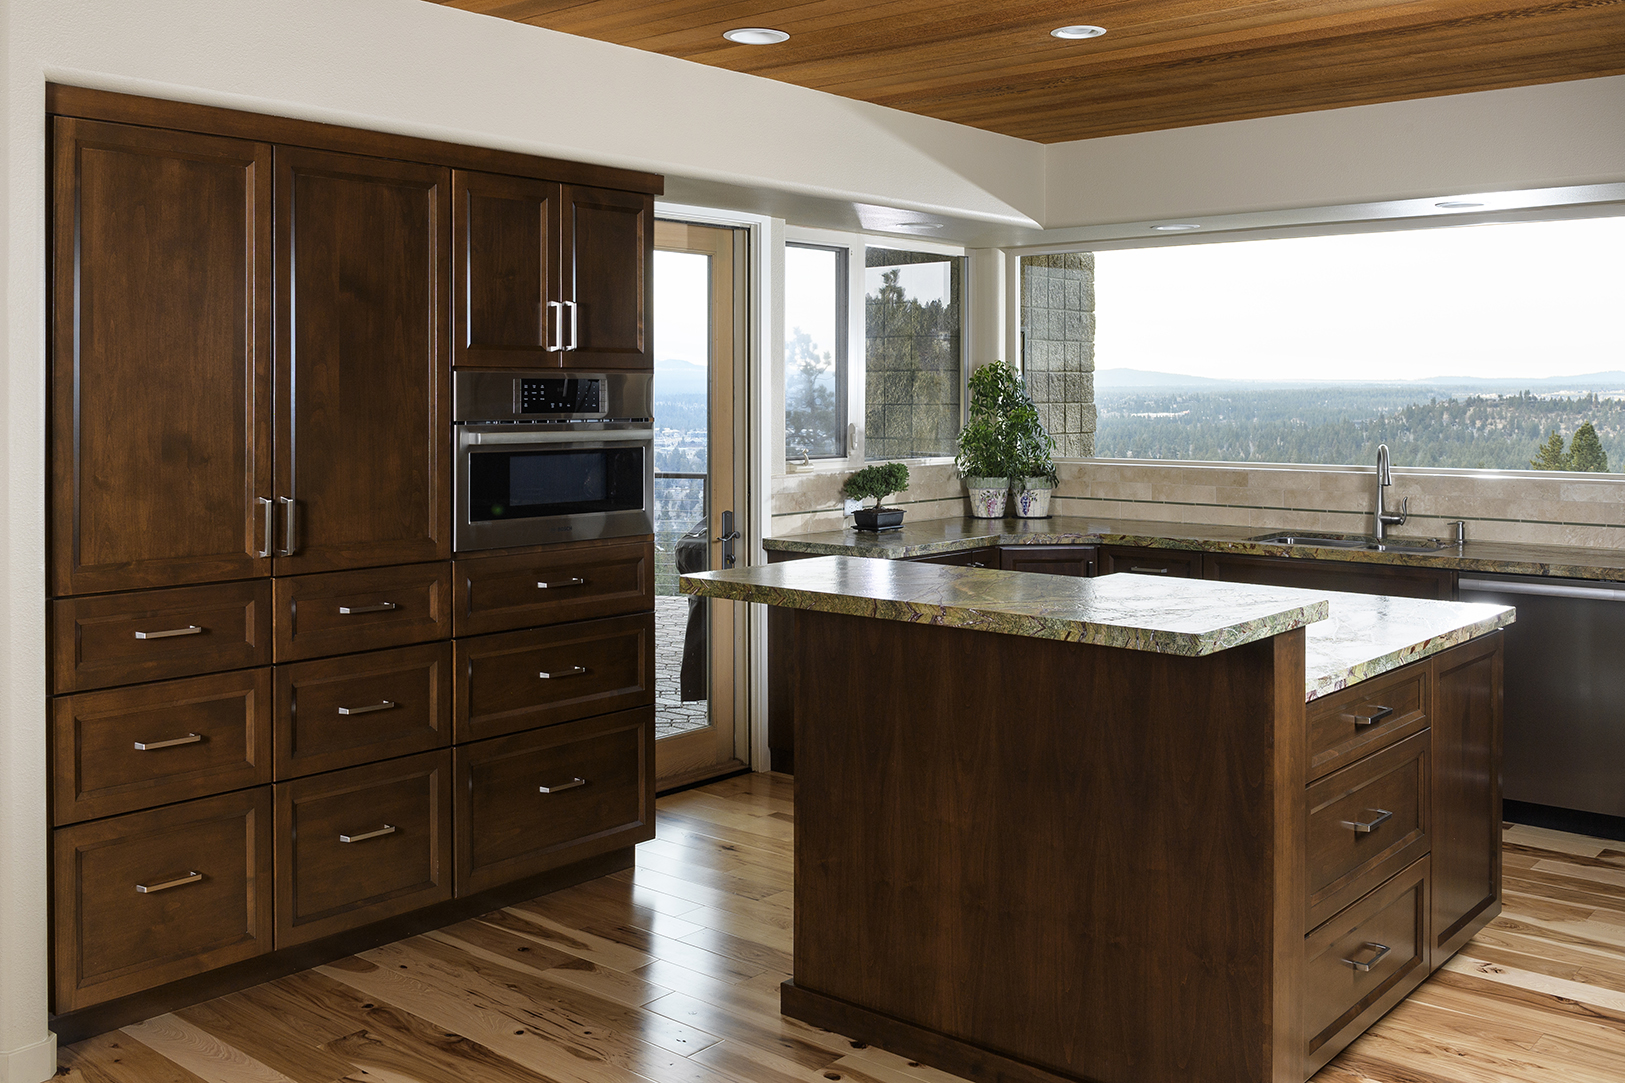 PGC-Building-design-bend-oregon-combs-remodel-7891-1625px